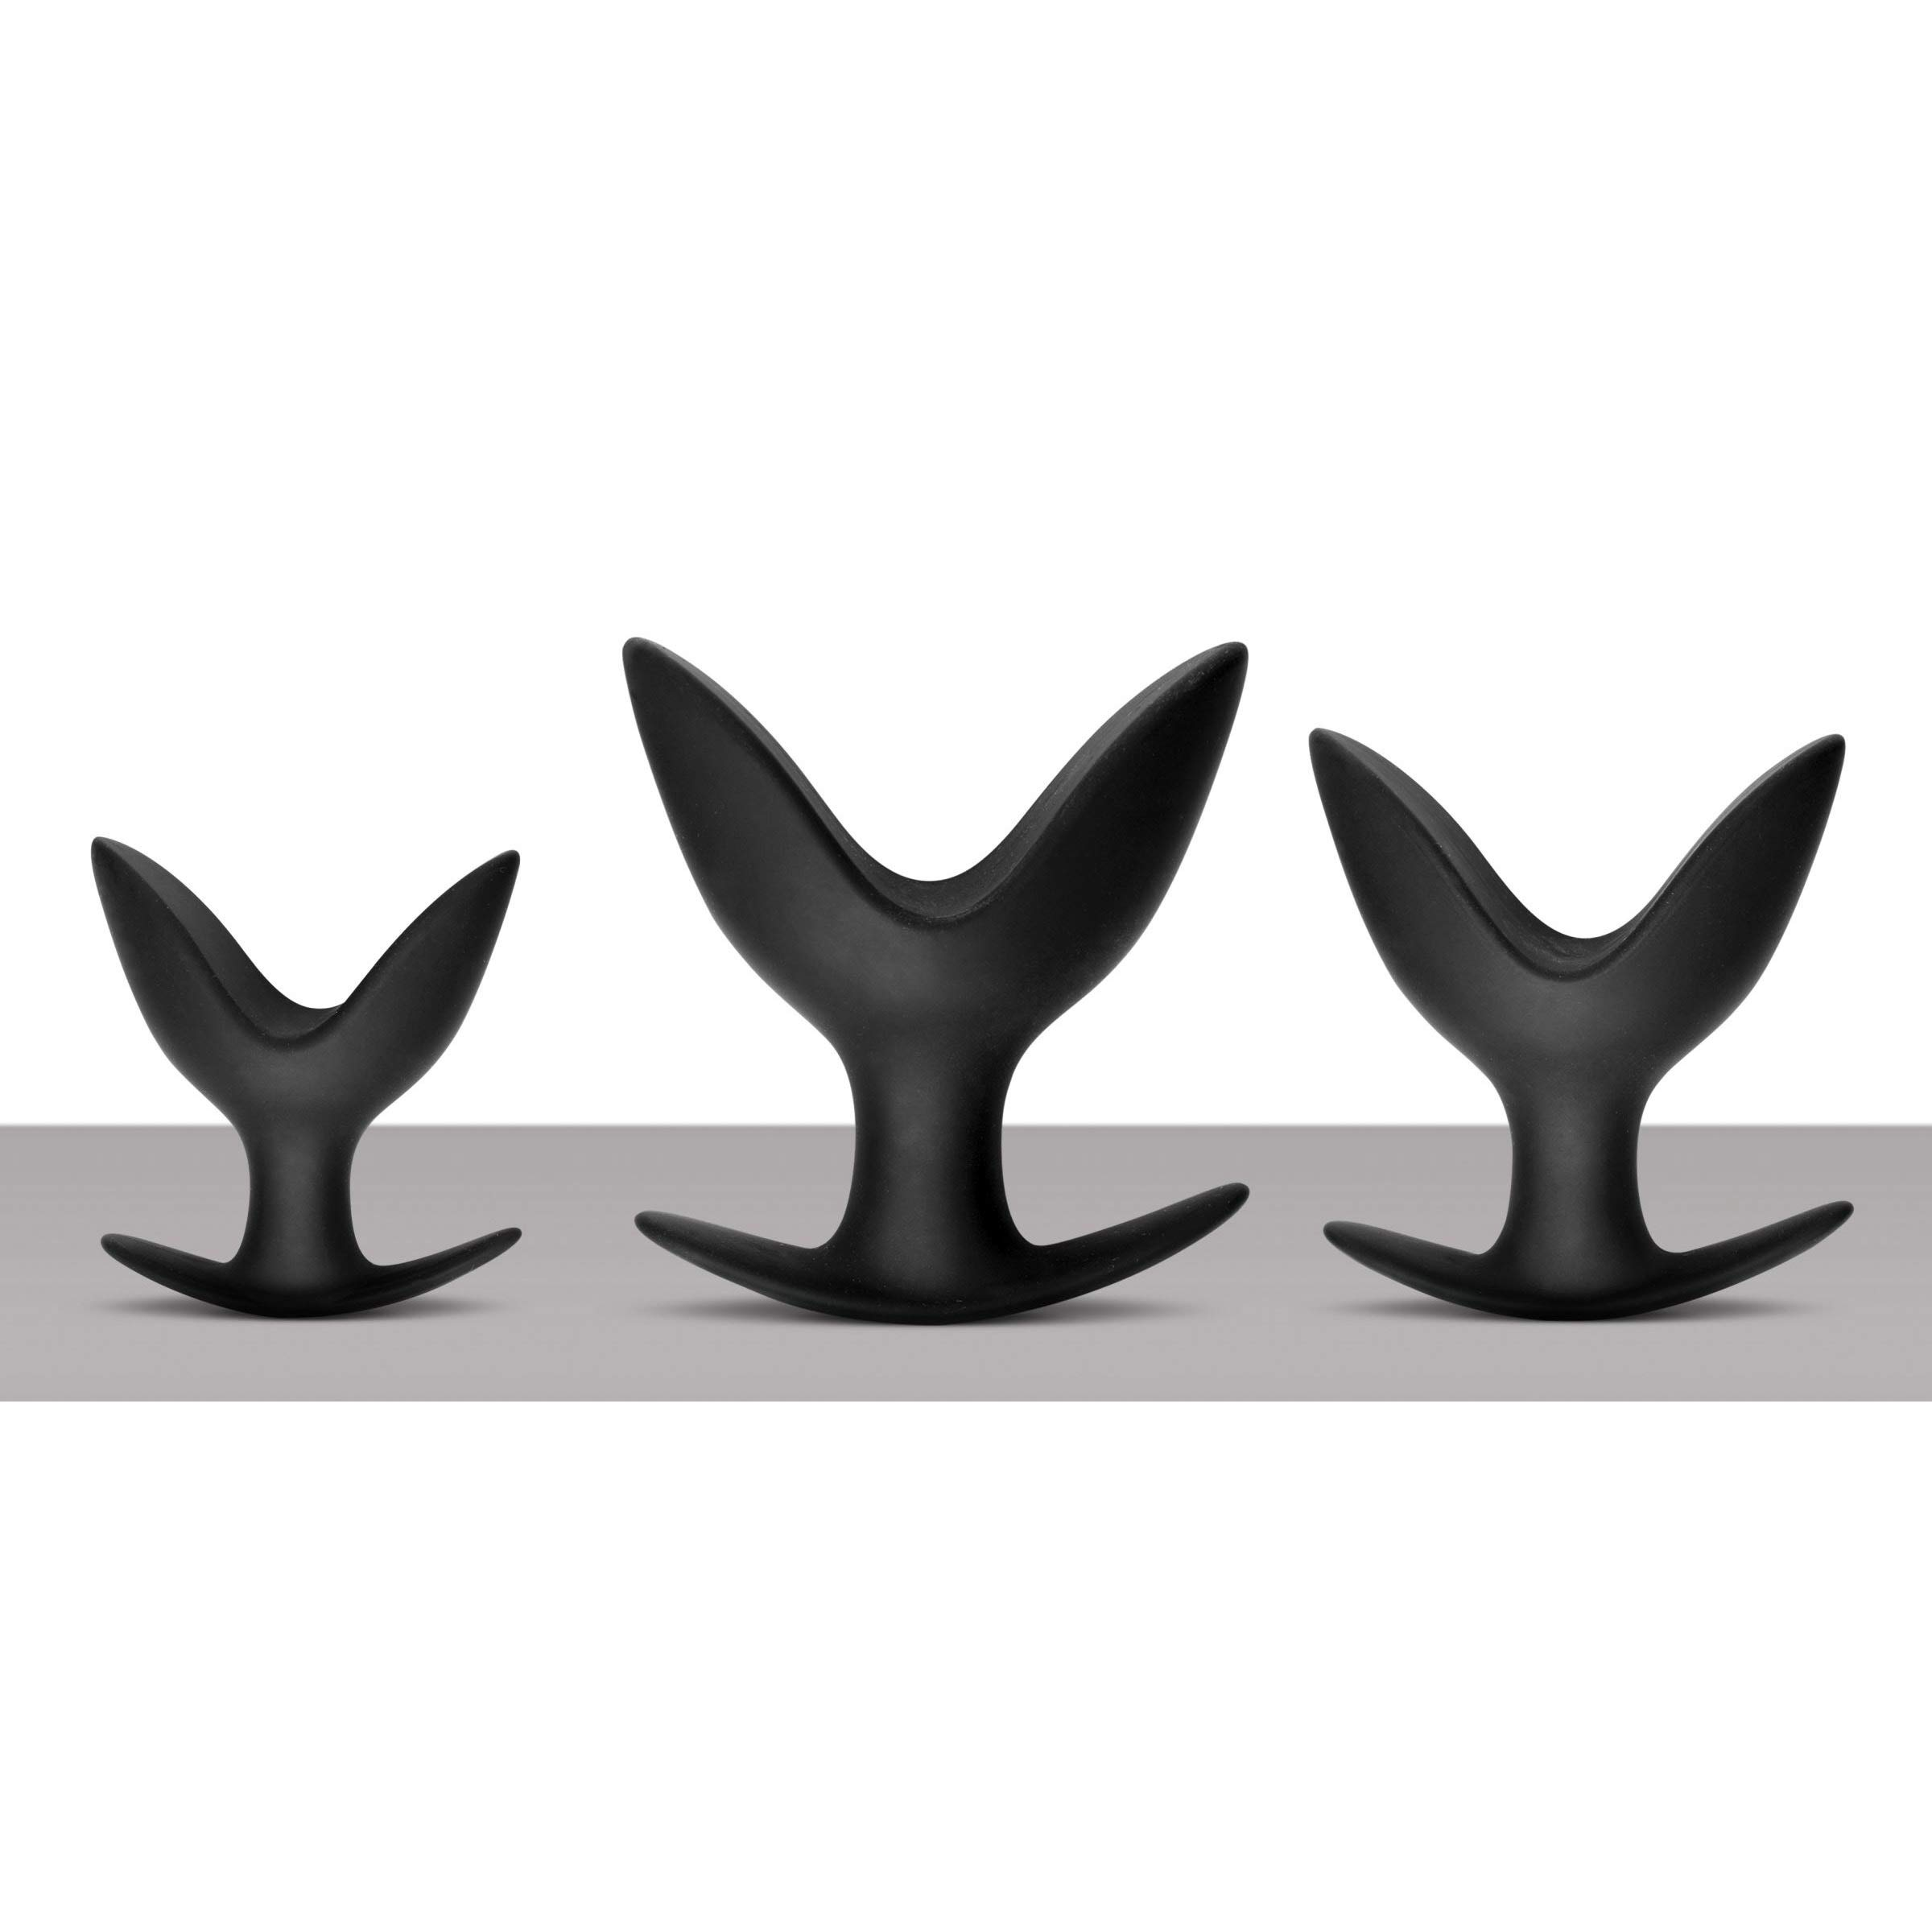 Master Series 3 Piece Silicone Anal Anchor Set